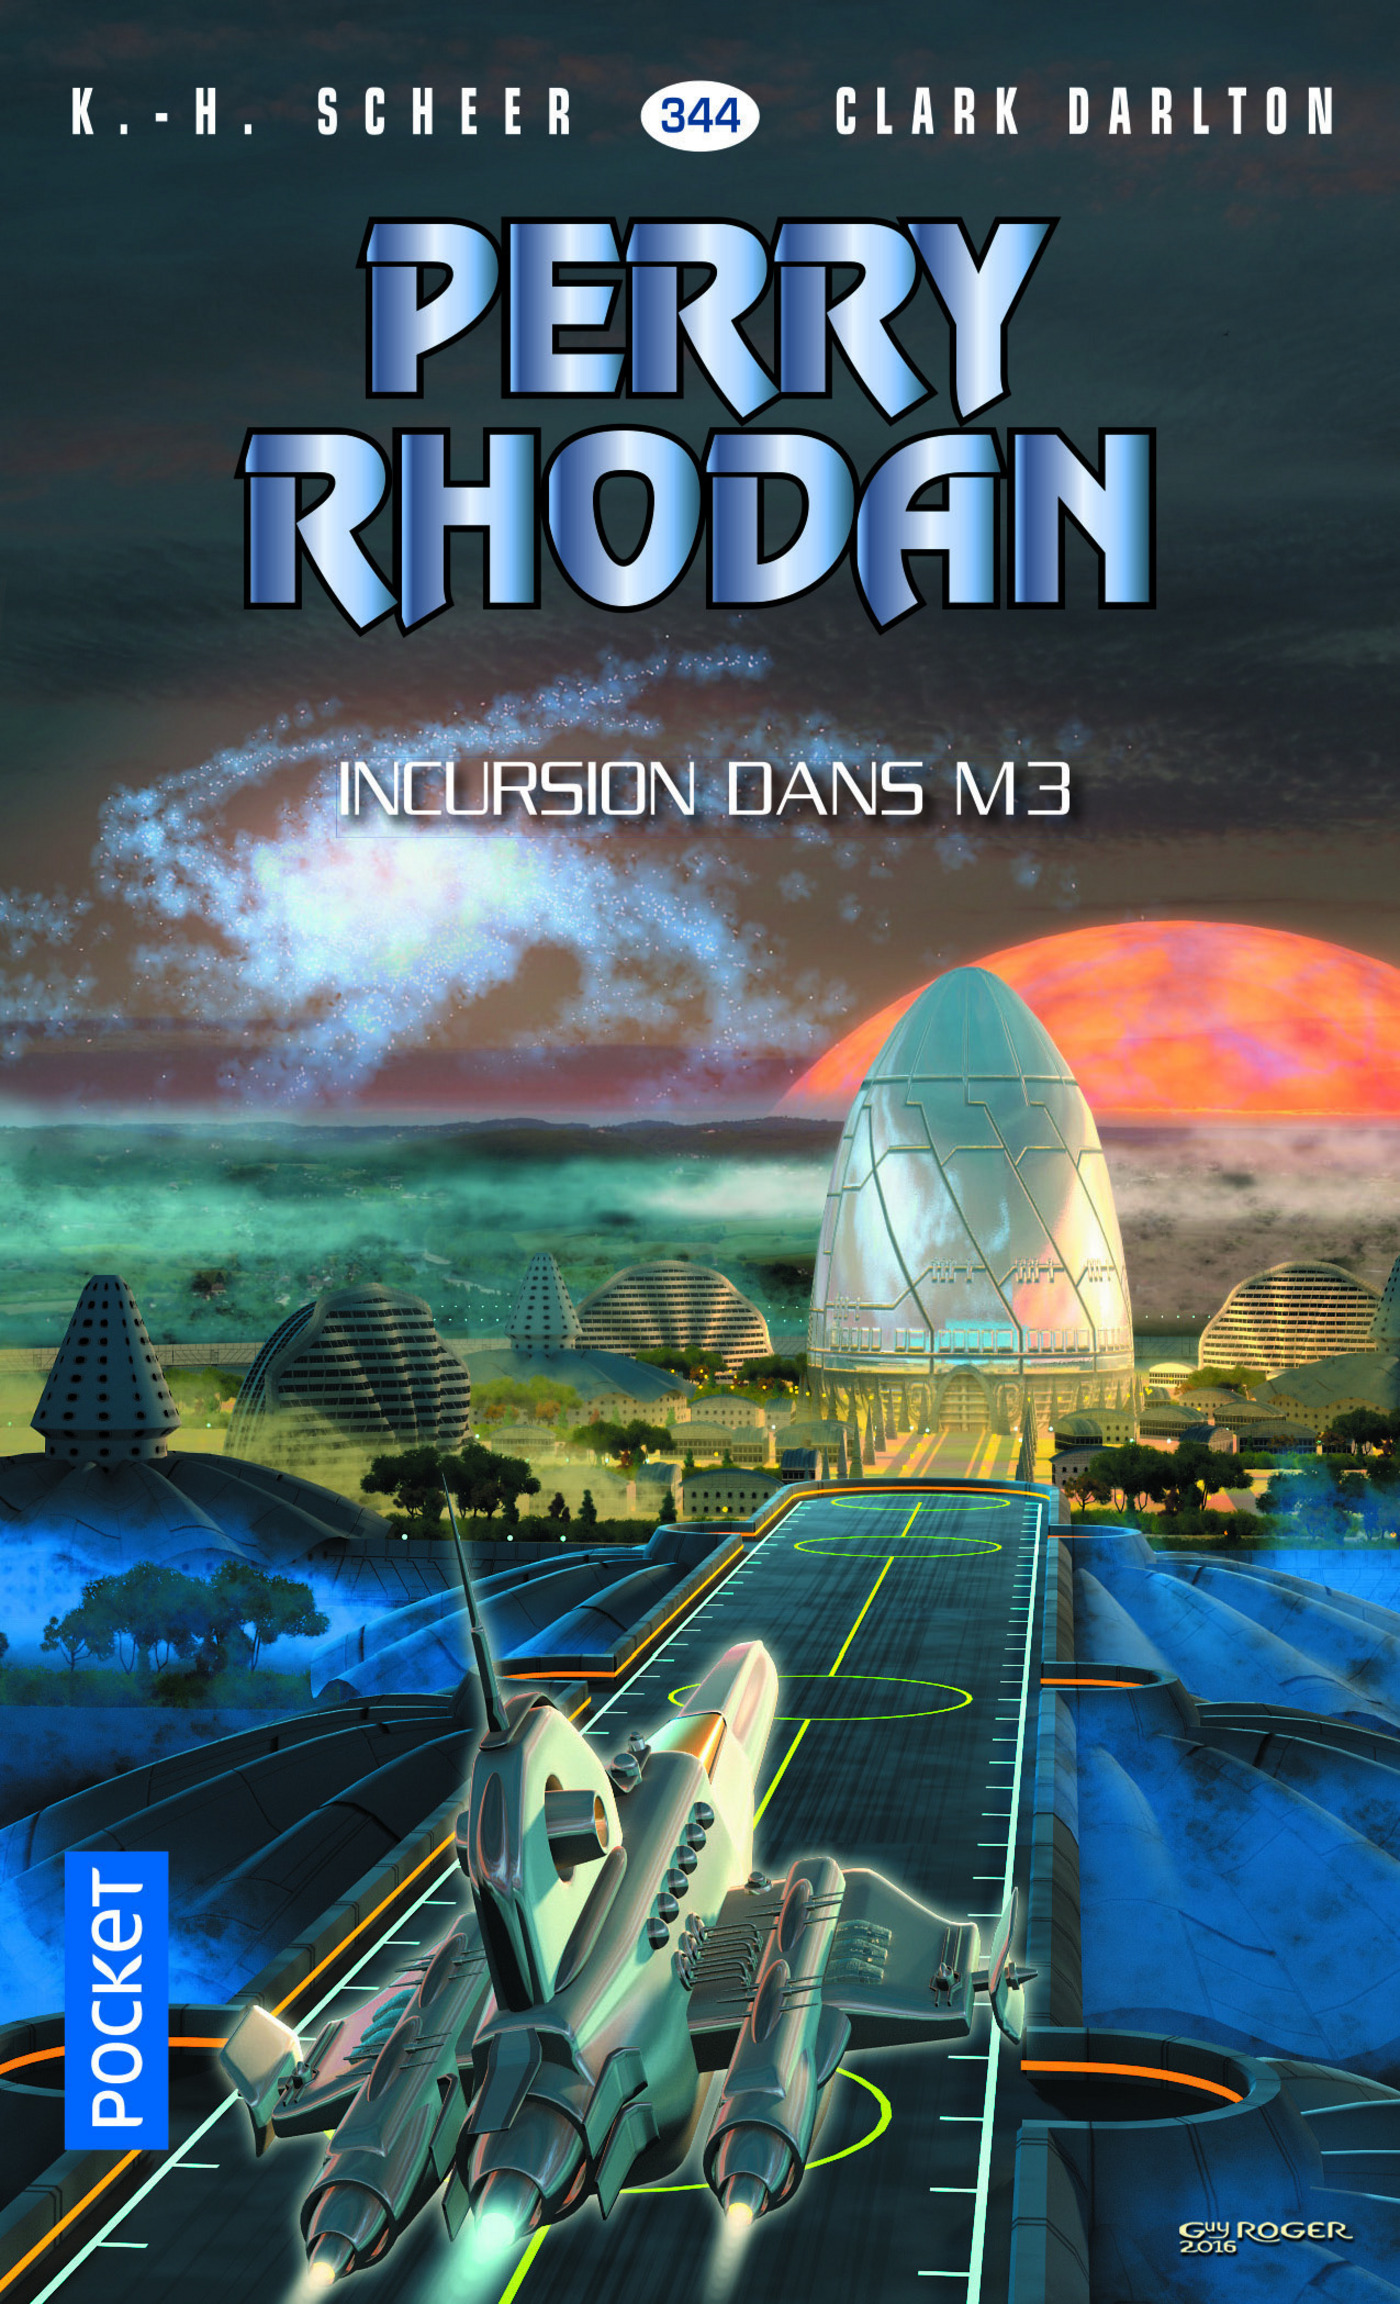 Perry Rhodan n°344 - Incursion dans M3